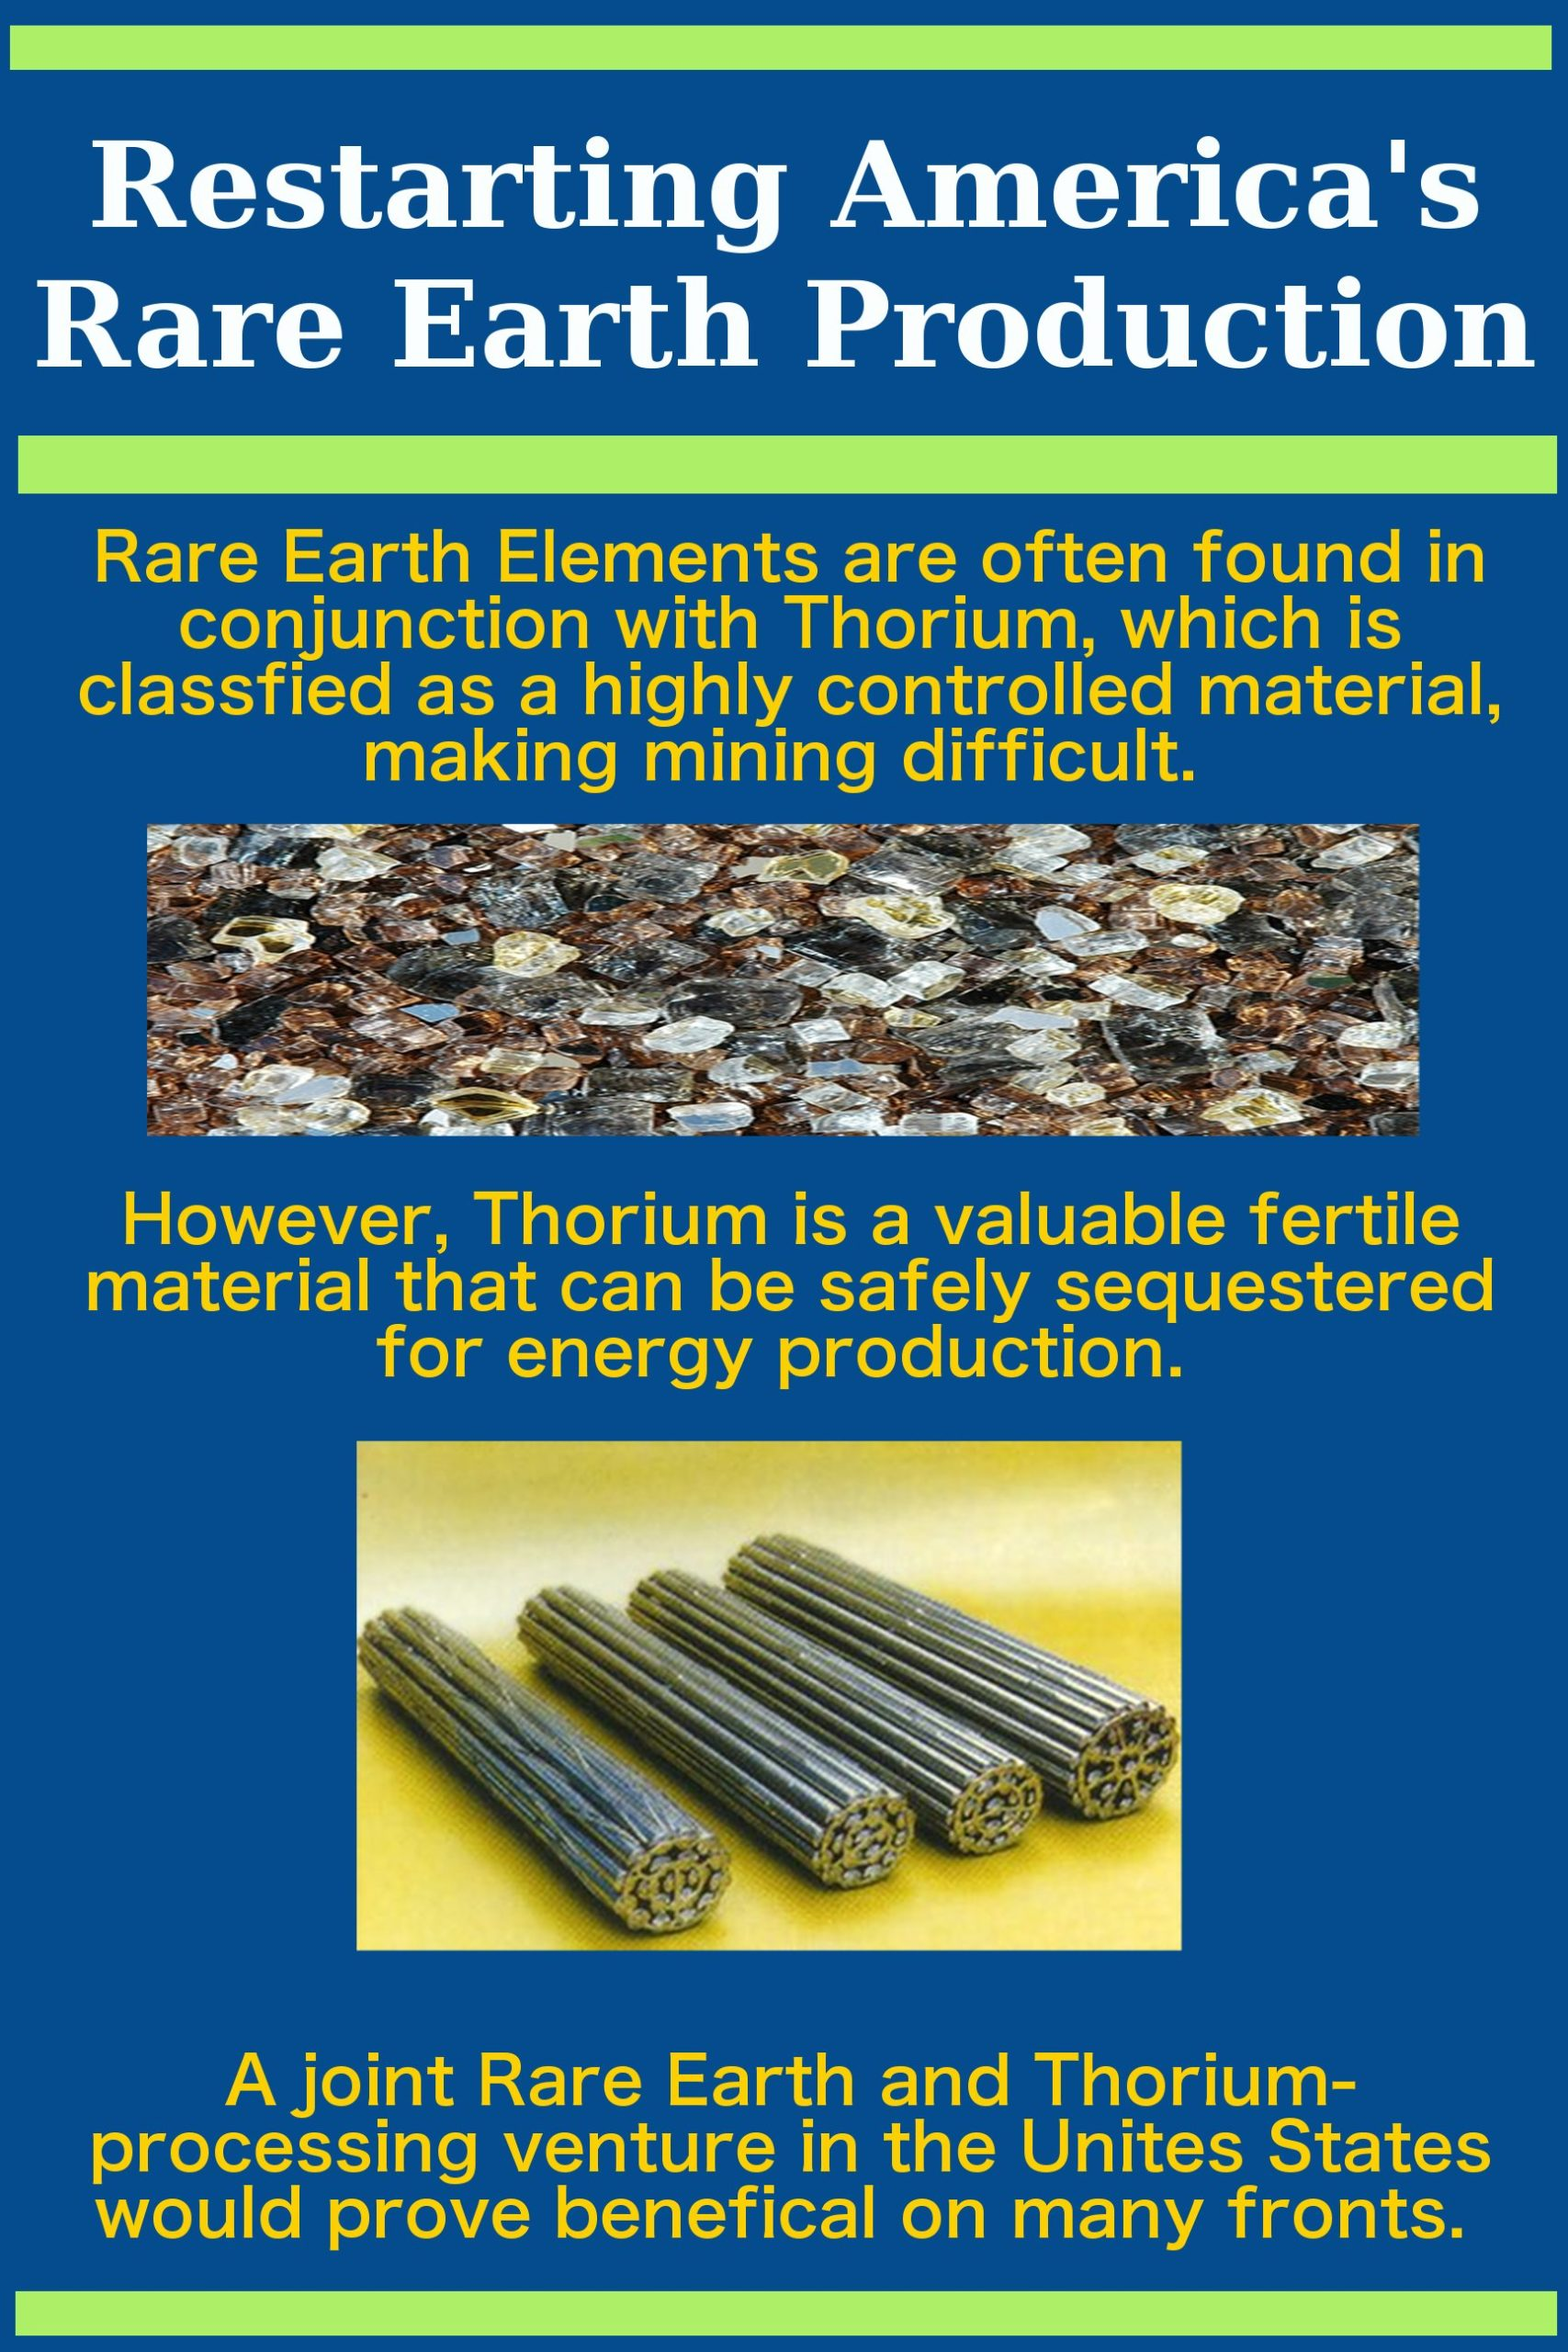 Rare Earth Thorium